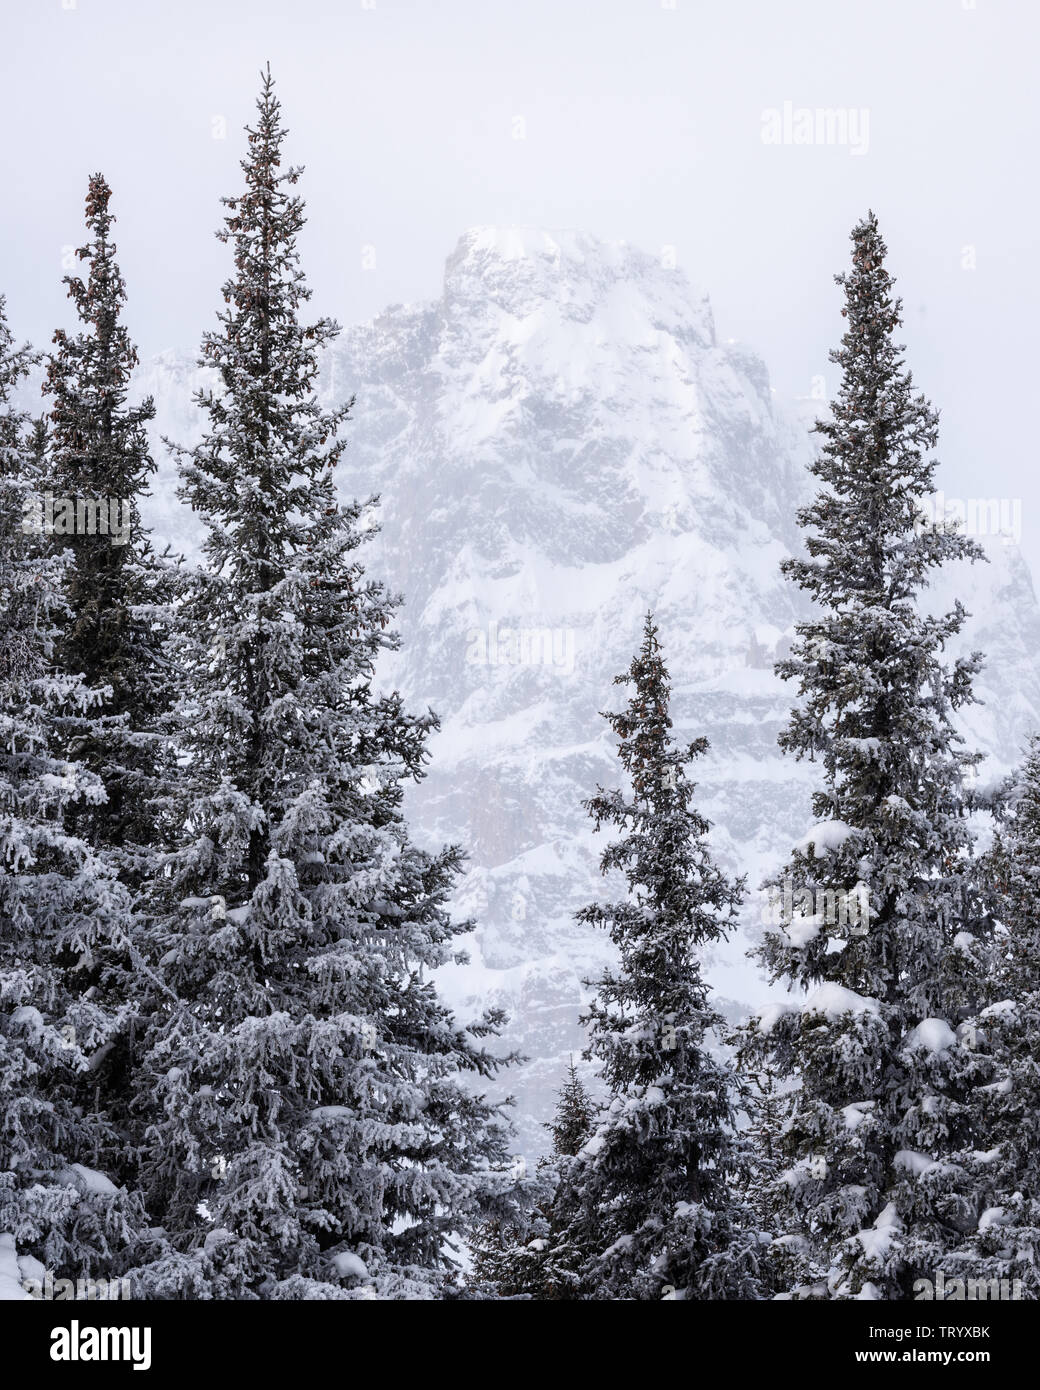 Snow-covered conifer trees in the depth of winter in the Canadian Rockies, Icefields Parkway - Stock Image